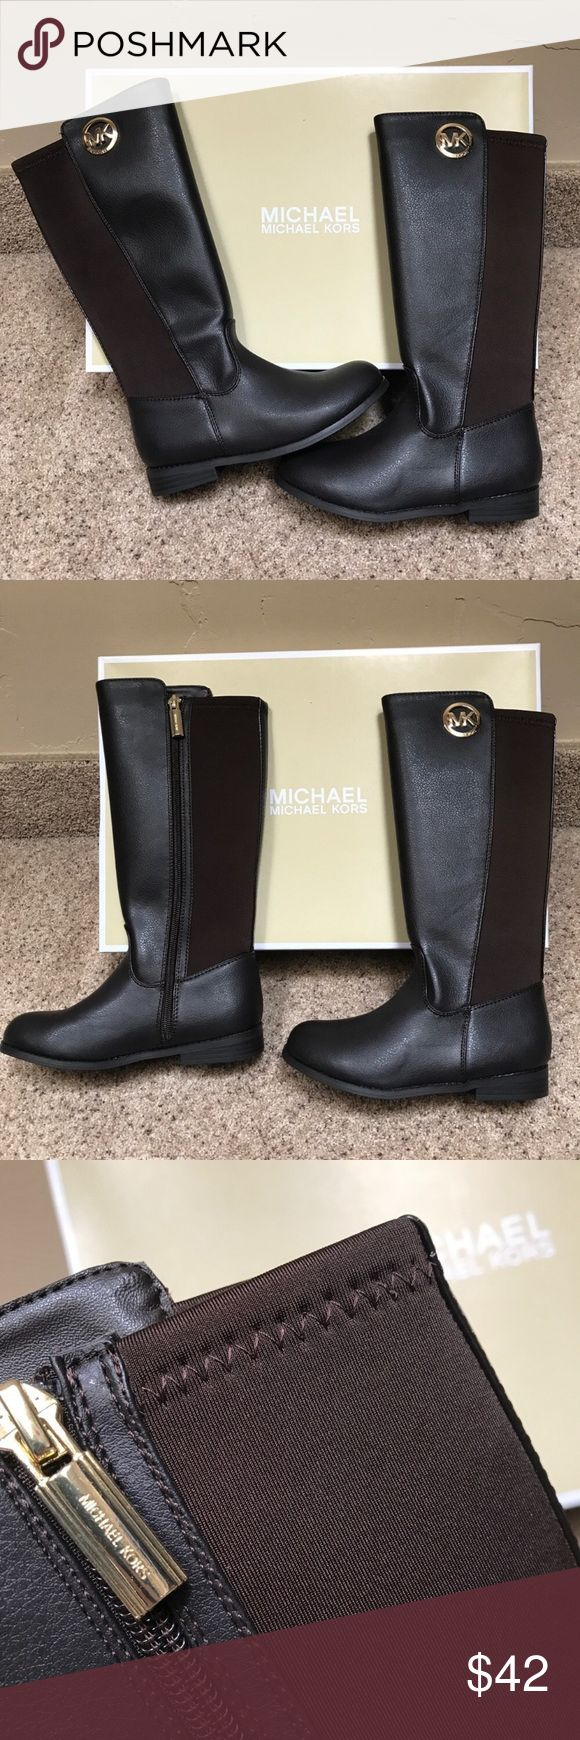 NEW Michael Kors Knee Boots Girls 1 New Michael Kors girls knee high boots in brown faux leather.  Inside leg zipper with gold logo on outside of legs.  Stretch nylon fabric behind calf for perfect fit.  Zipper pull has embossed logo.  Rounded toe.  100% authentic.  Purchased locally.  Girl size 1.  Box was damaged in shipping so this pair comes without original box.  Last pic does different size but wanted to show name of MK boot Michael Kors Shoes Boots